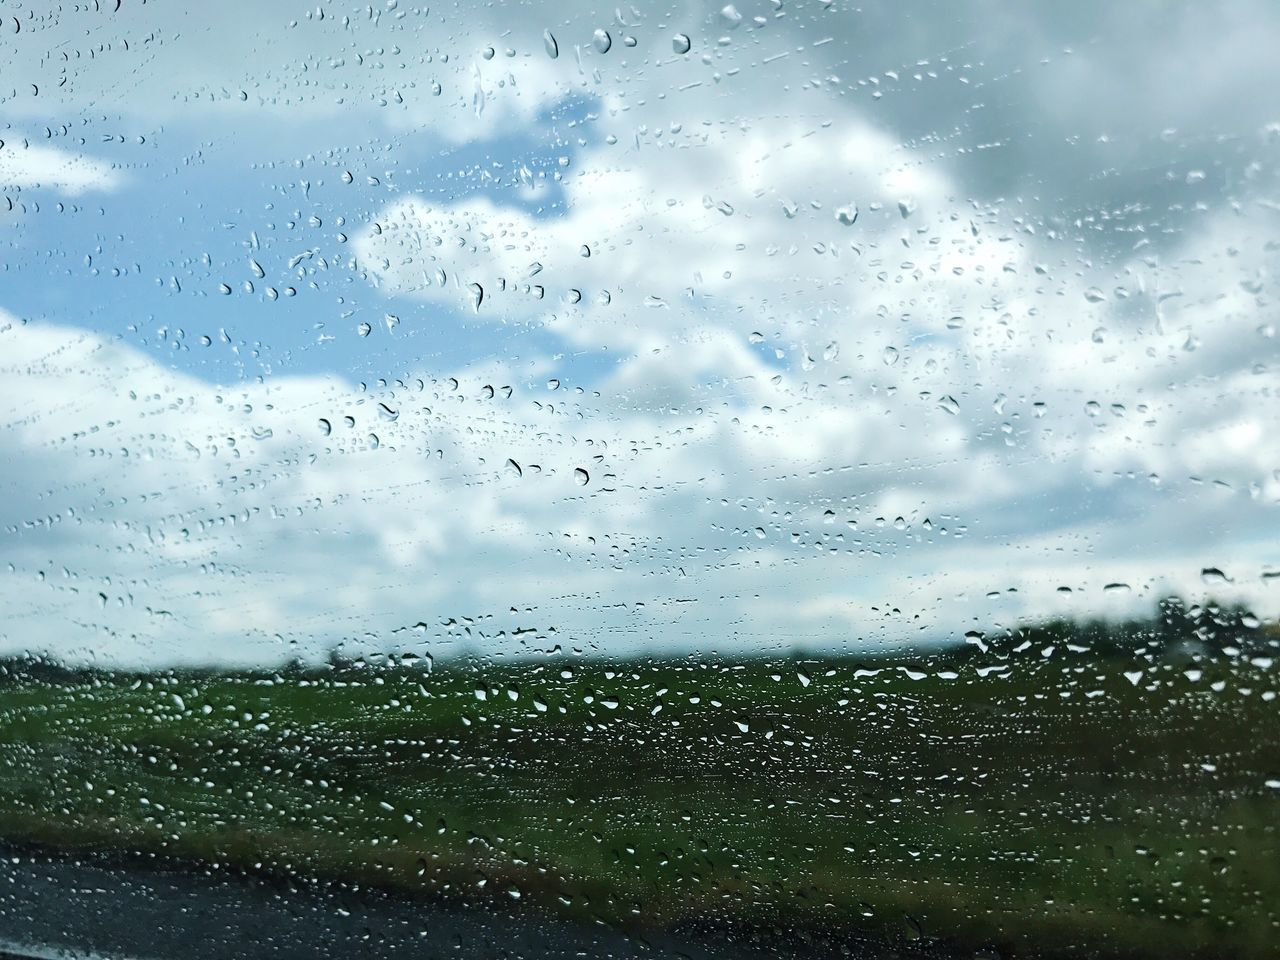 Drop Glass - Material Rain Wet Window Weather Sky RainDrop No People Cloud - Sky Water Full Frame Storm Cloud Beauty In Nature Freshness Day Vscocam VSCO Travel Destinations